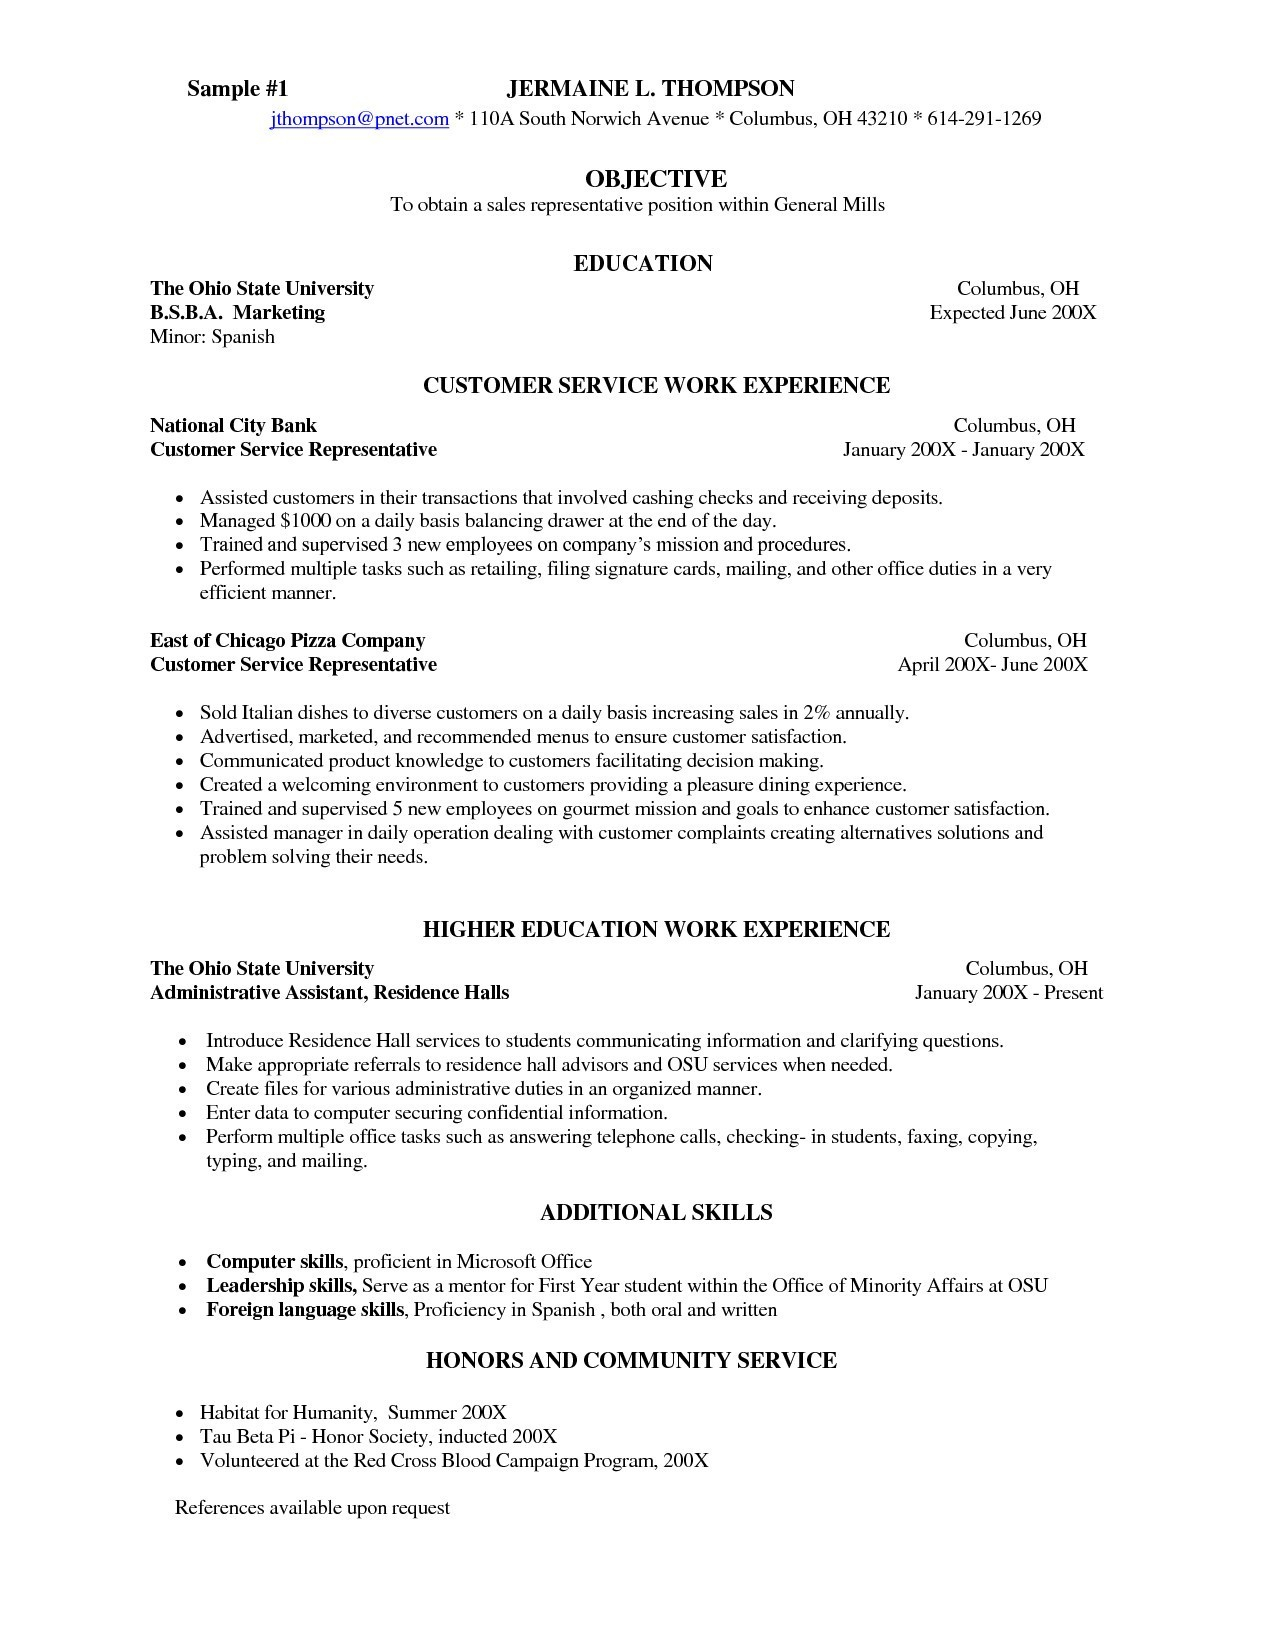 Banquet Server Resume Description - Banquet Server Resume Examples New Server Resume Template Unique